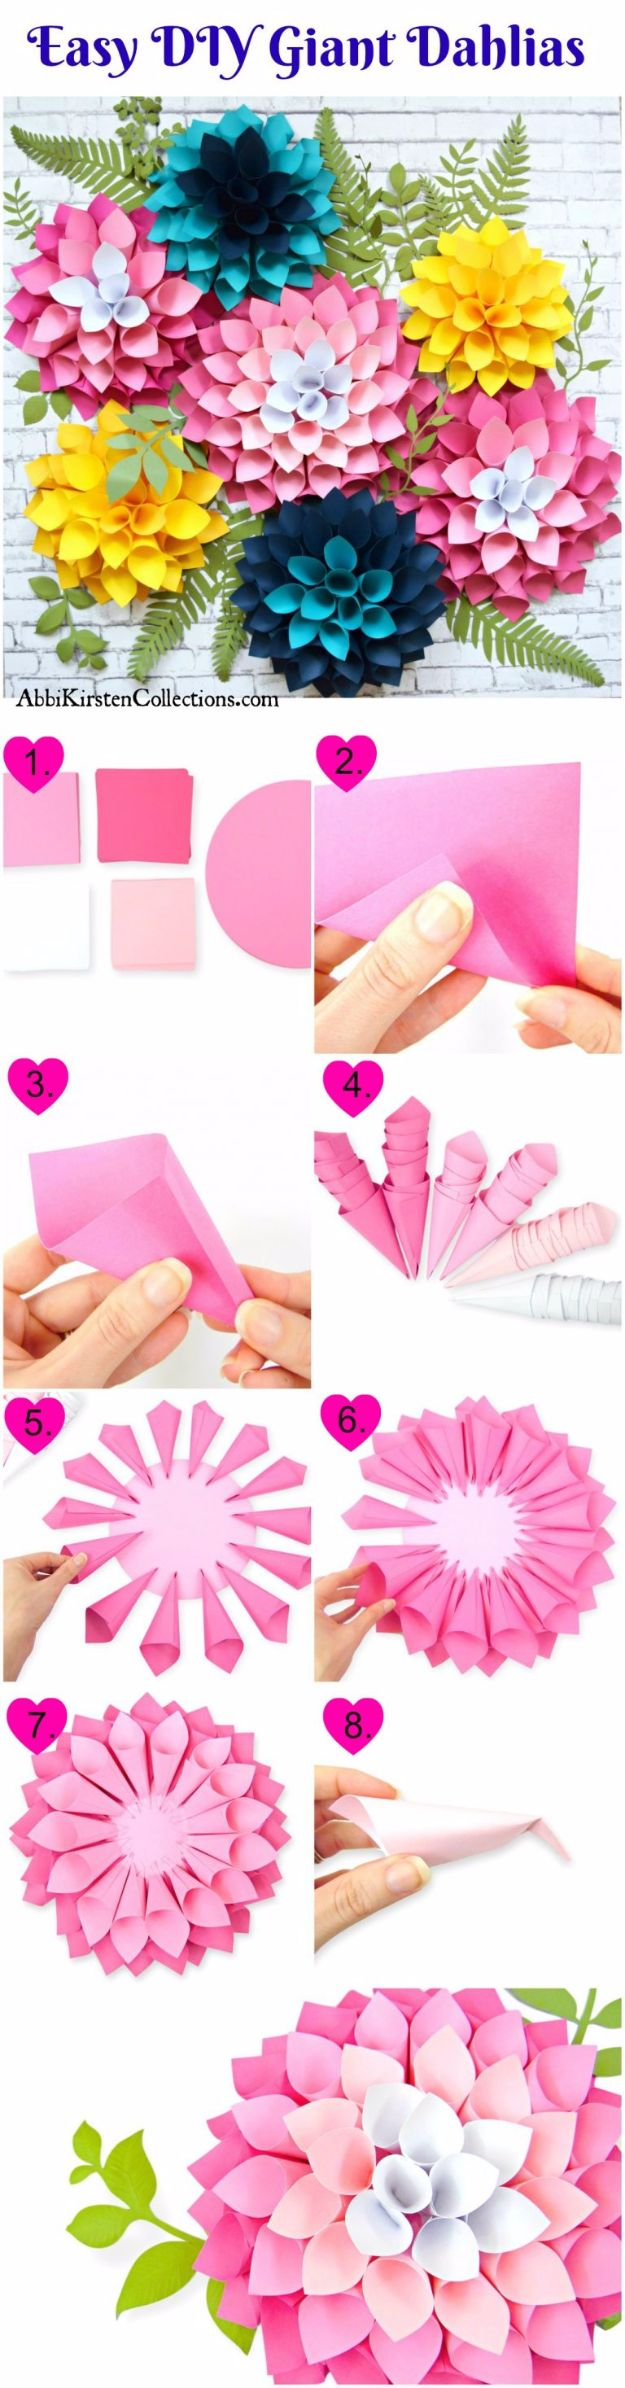 DIY Paper Flowers - DIY Giant Dahlia Paper Flowers - How To Make A Paper Flower - Large Wedding Backdrop for Wall Decor - Easy Tissue Paper Flower Tutorial for Kids - Giant Projects for Photo Backdrops - Daisy, Roses, Bouquets, Centerpieces - Cricut Template and Step by Step Tutorial